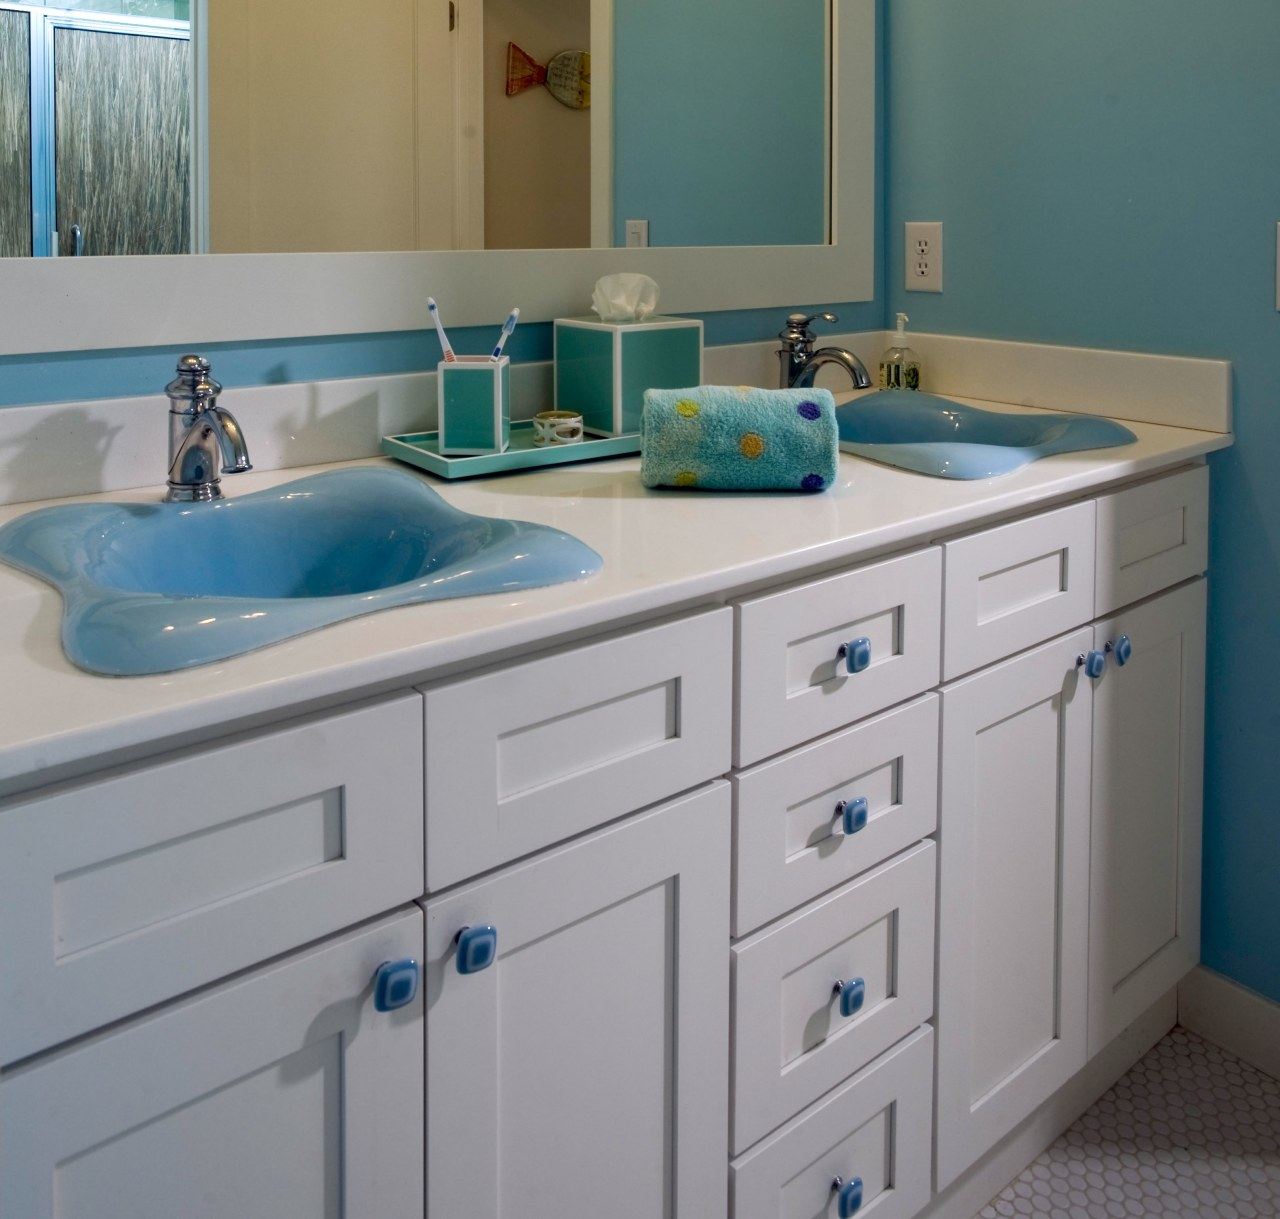 View of bathroom with white cabinetry and blue bathroom, bathroom accessory, bathroom cabinet, bathroom sink, blue, cabinetry, countertop, kitchen, room, sink, gray